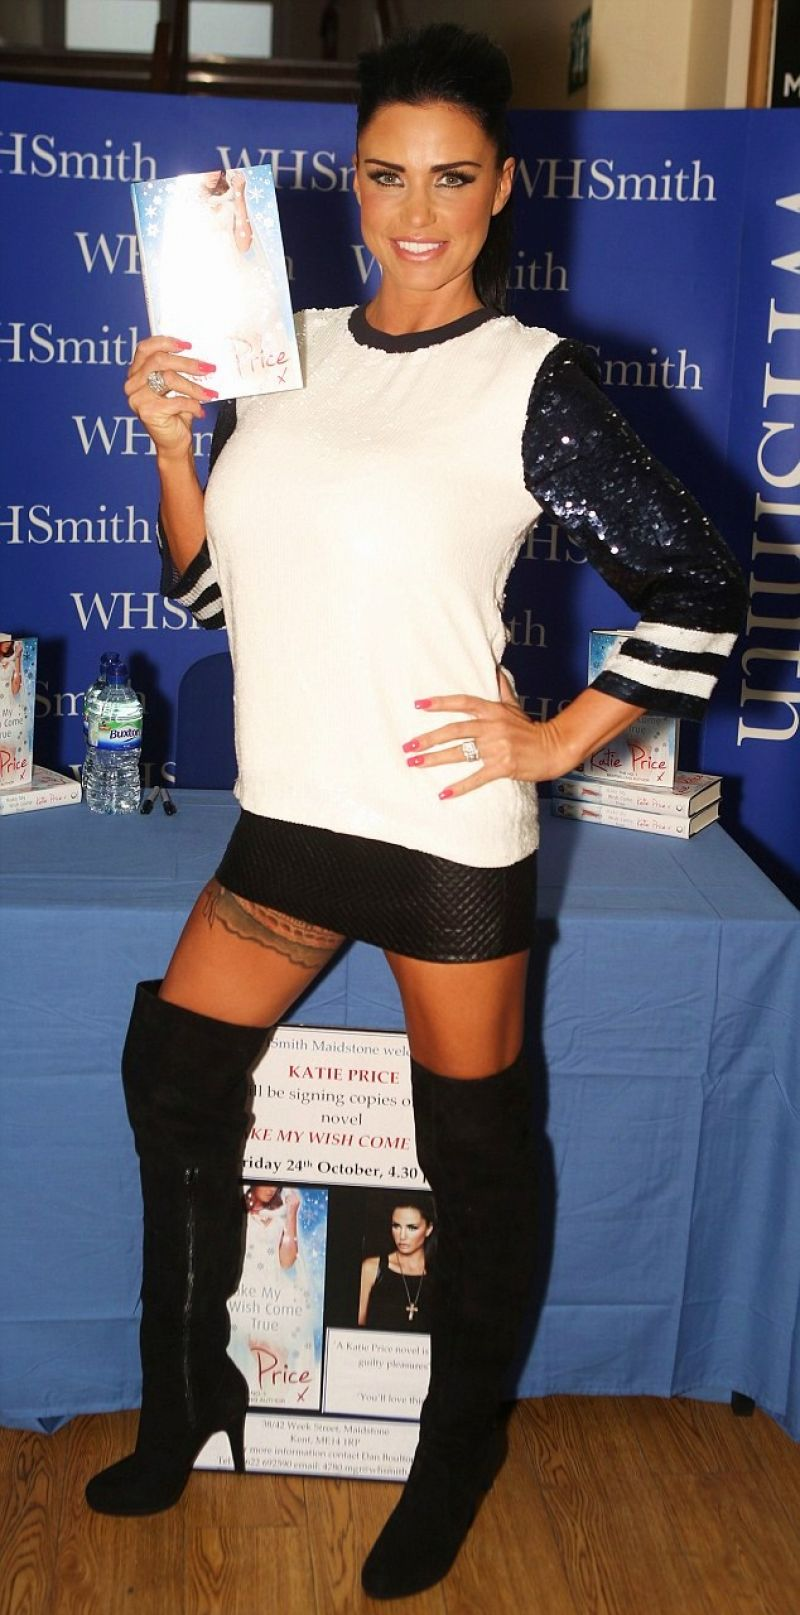 Katie Price Promoting Her Book